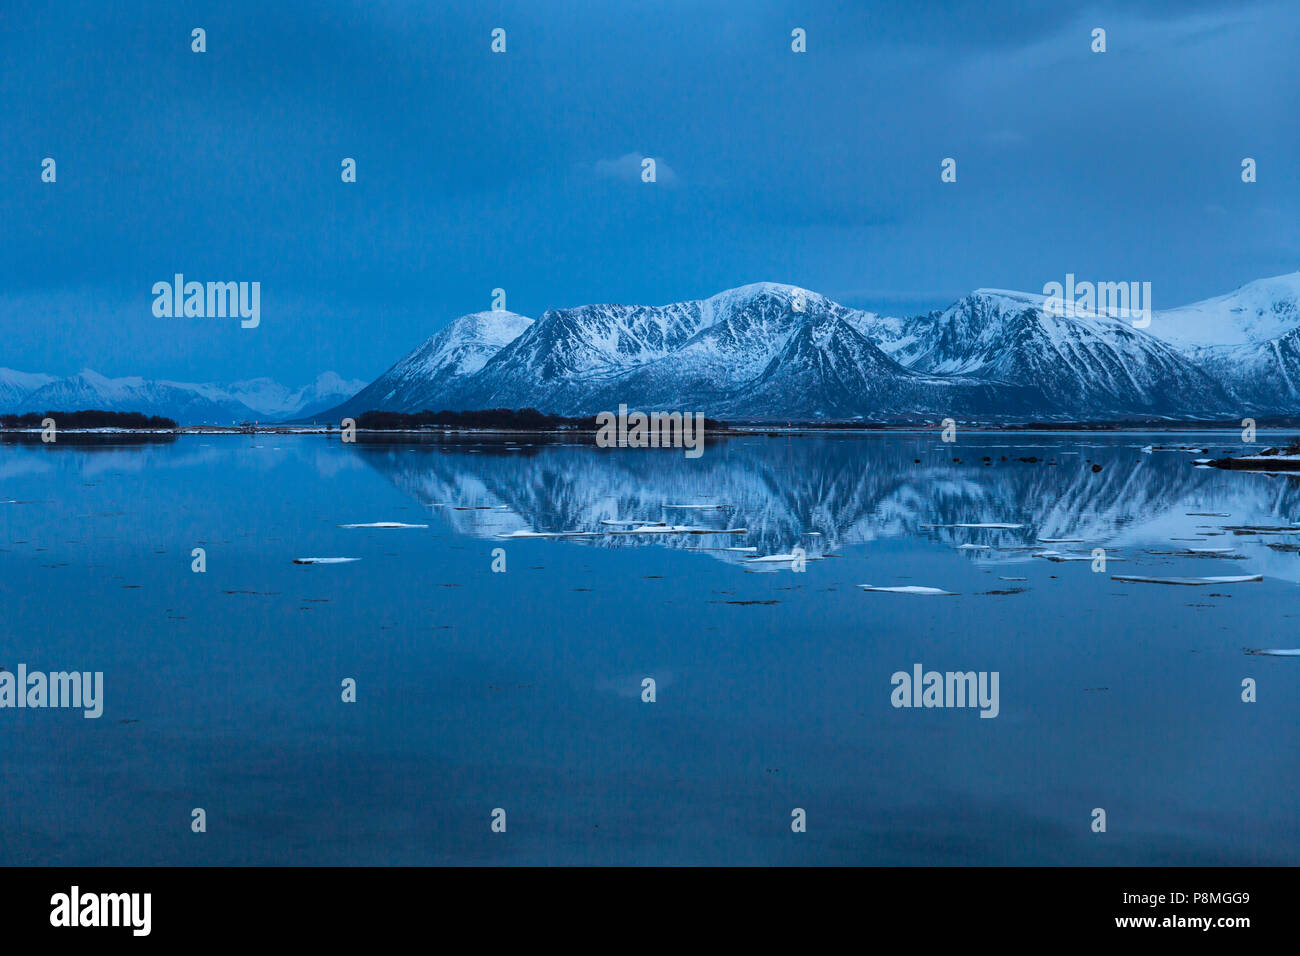 Snow-covered mountains reflecting in a lake after sunset - Stock Image